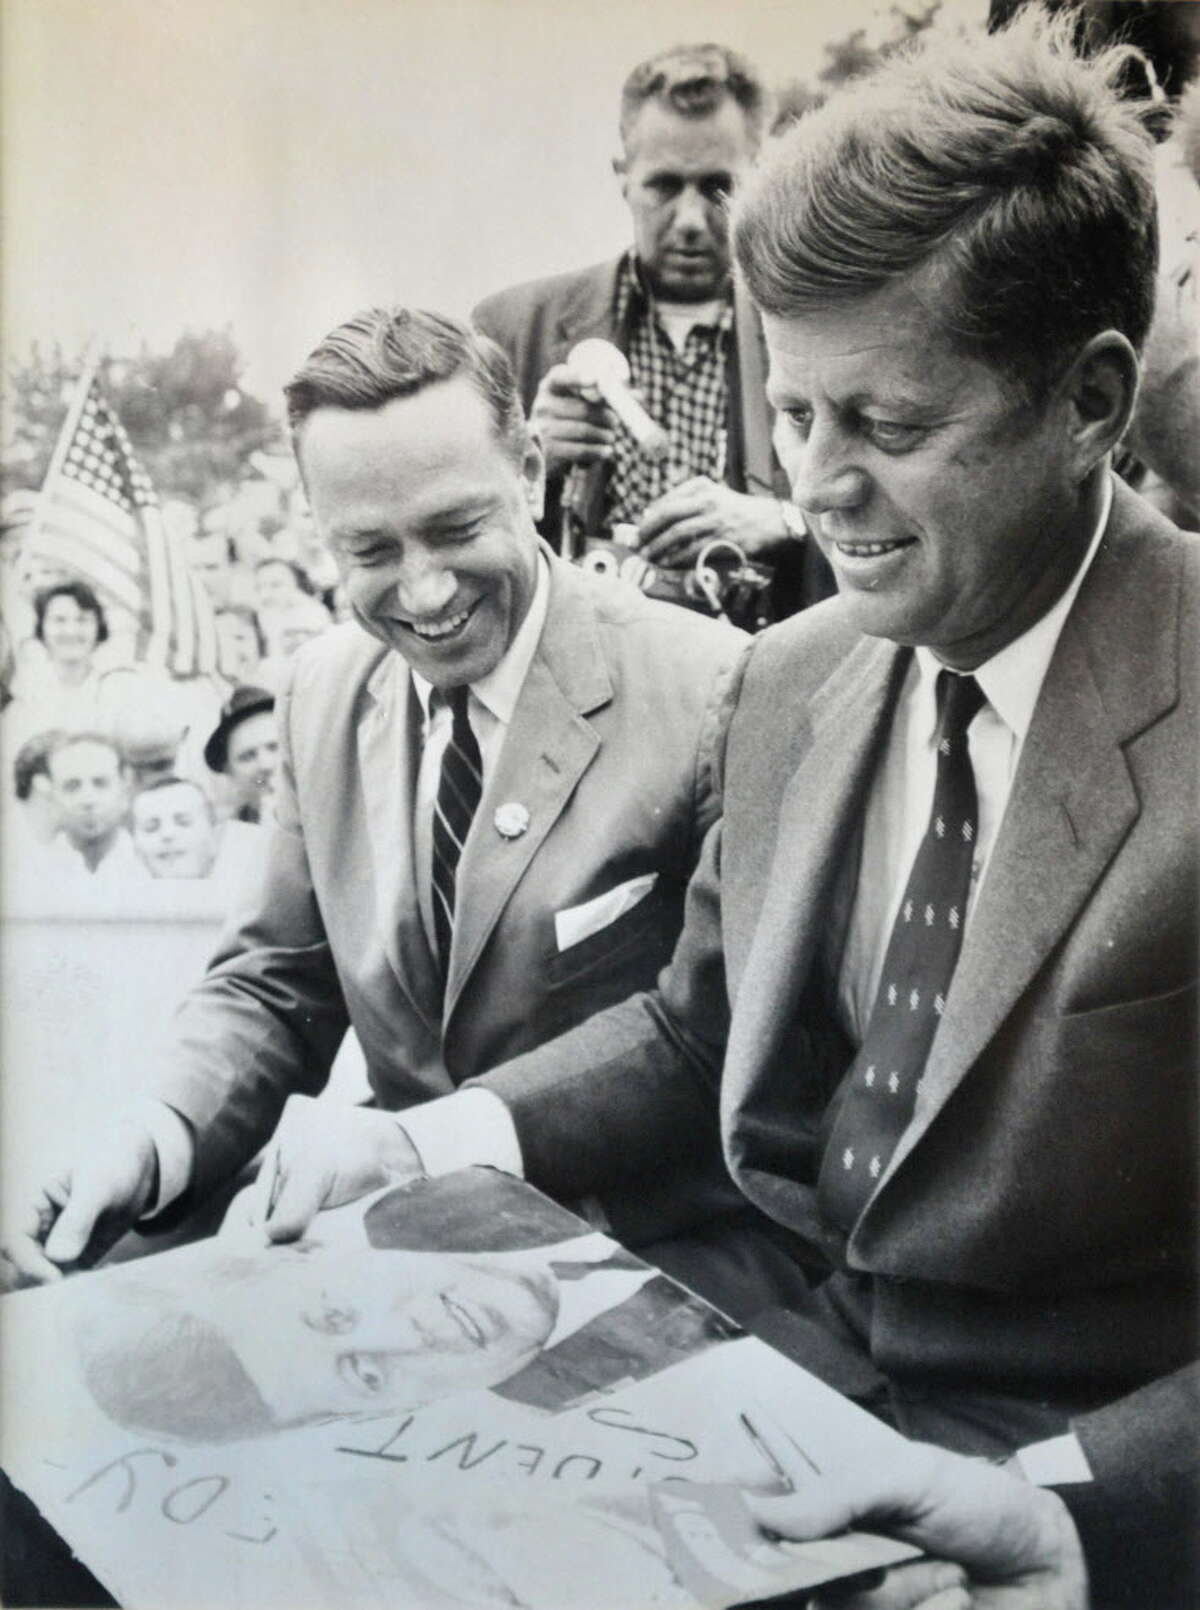 Photograph courtesy of Mayor Brian Stratton: Undated B&W photo of then US Congressman Sam Stratton ,left, with John F. Kennedy during a campaign stop in Schenectady. (for Times Union story)